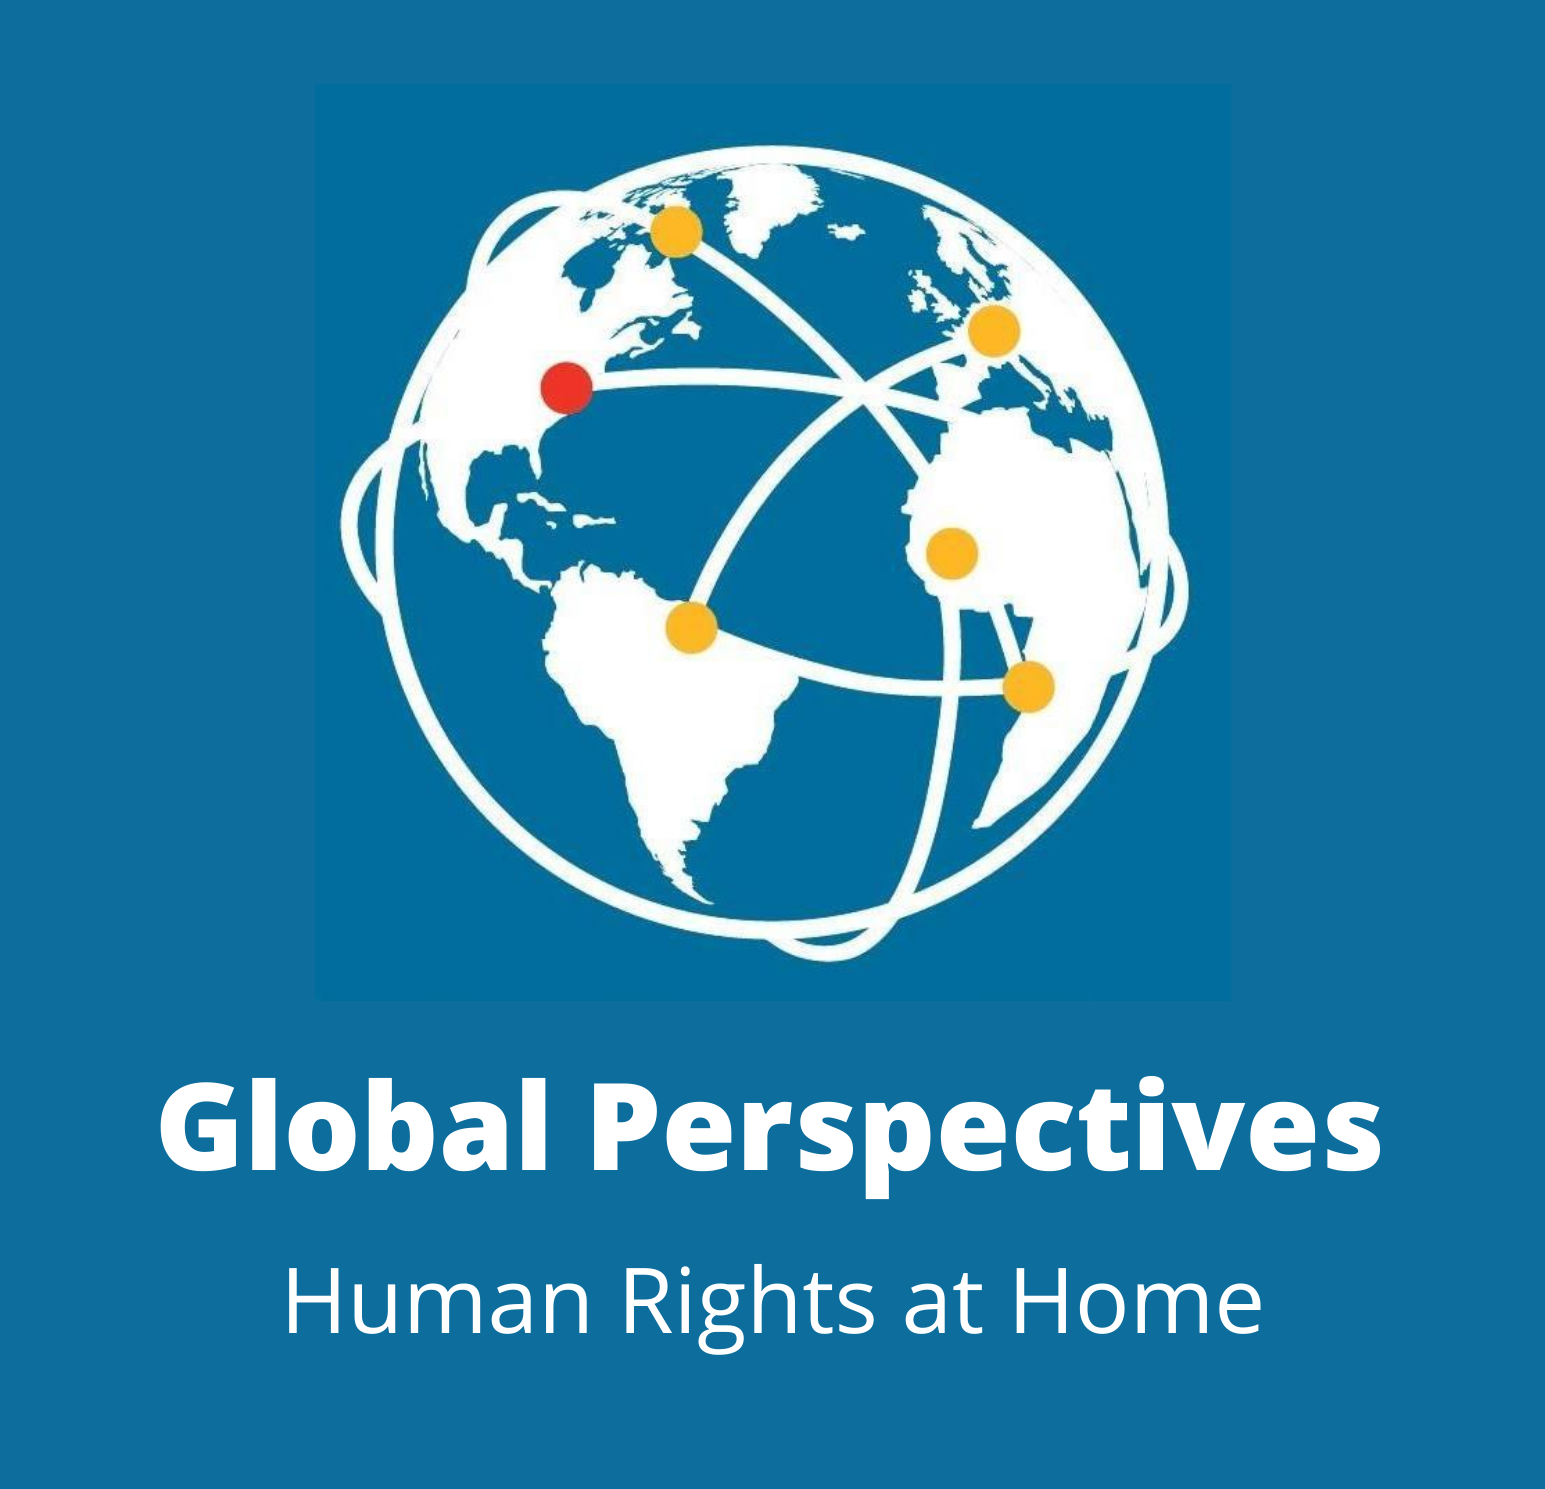 Global Perspectives Logo with Globe and Blue Background